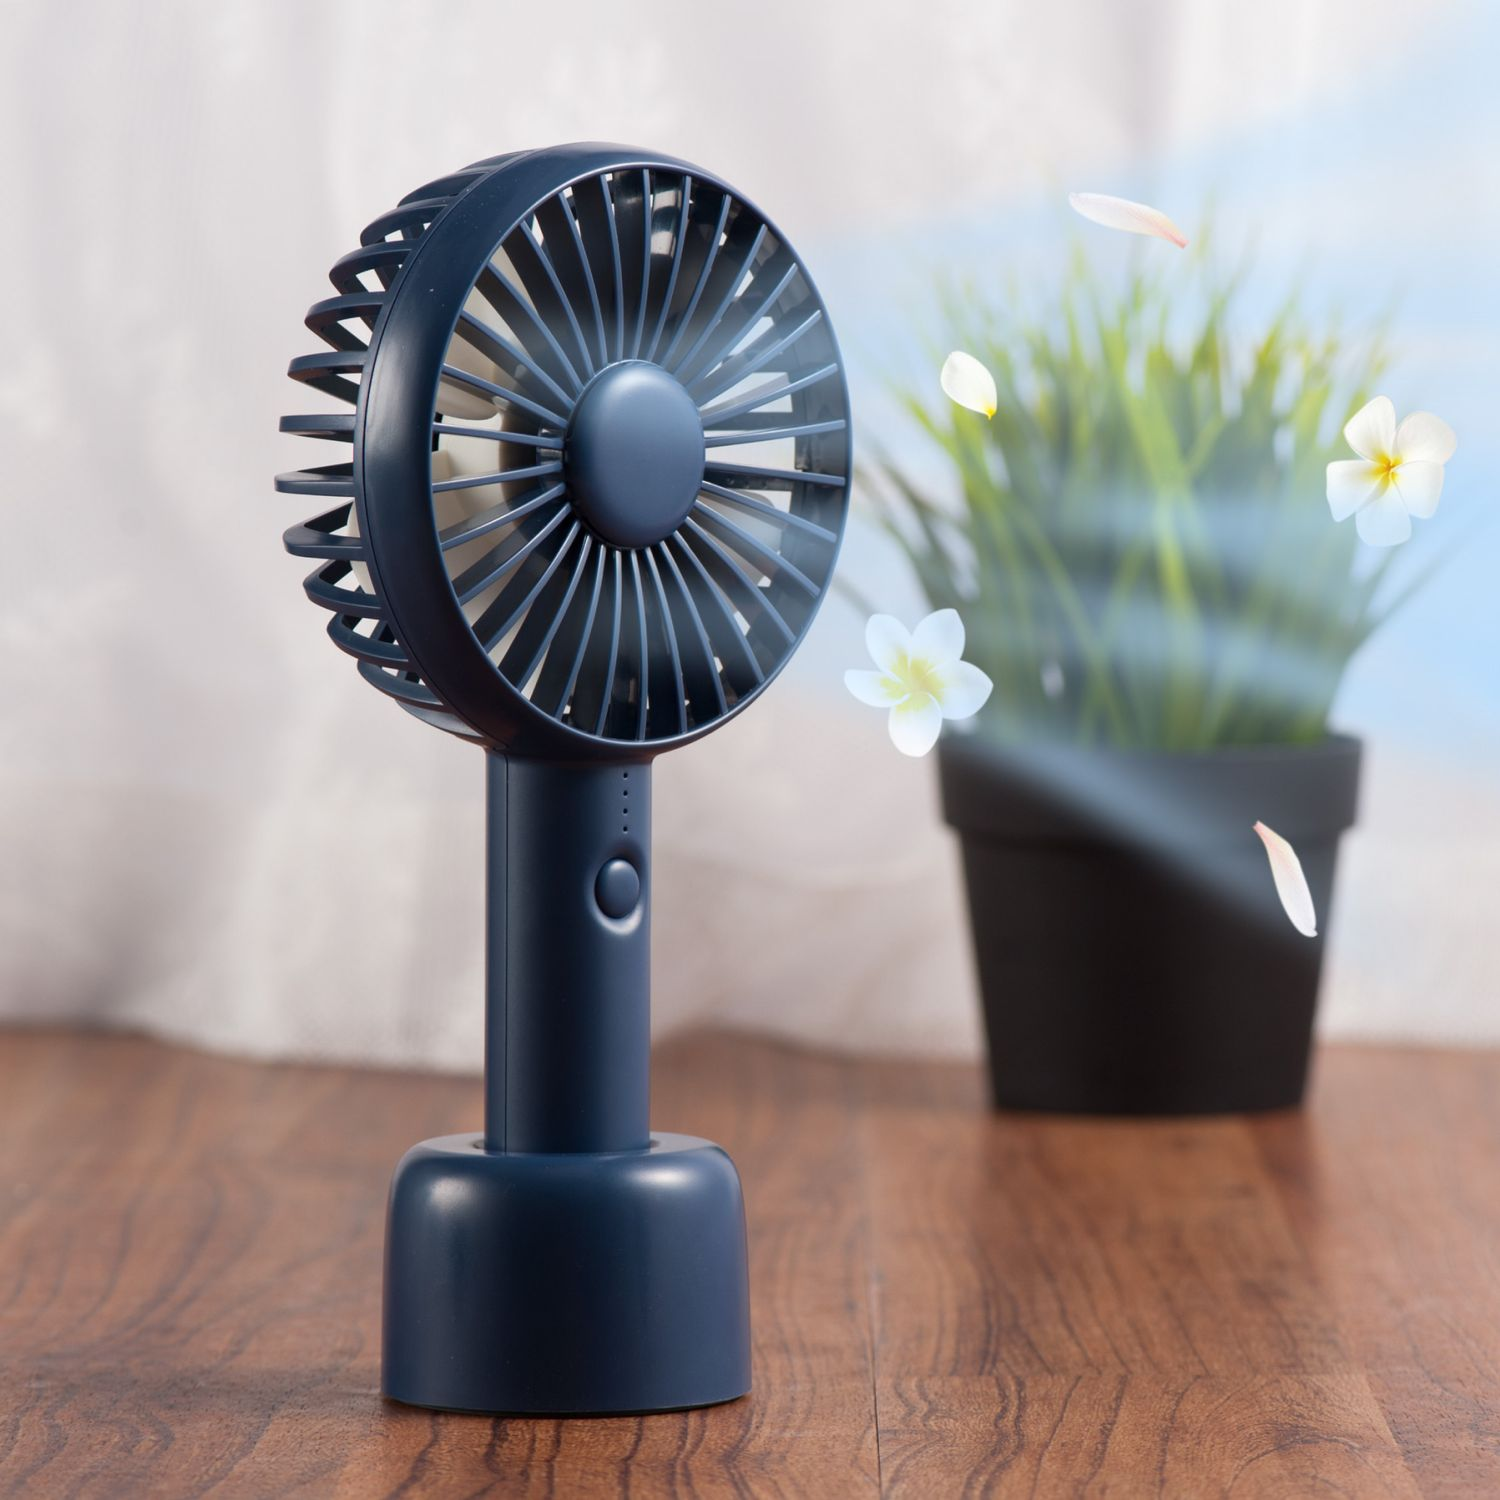 Mini Handheld Fan by Insten Personal Portable Aroma Cooling Fan Electric Cooler 5 HOURS USAGE TIME with Desk Stand USB Rechargeable Battery Operated for Office Home Traveling Silent 3 Speed Dark Blue